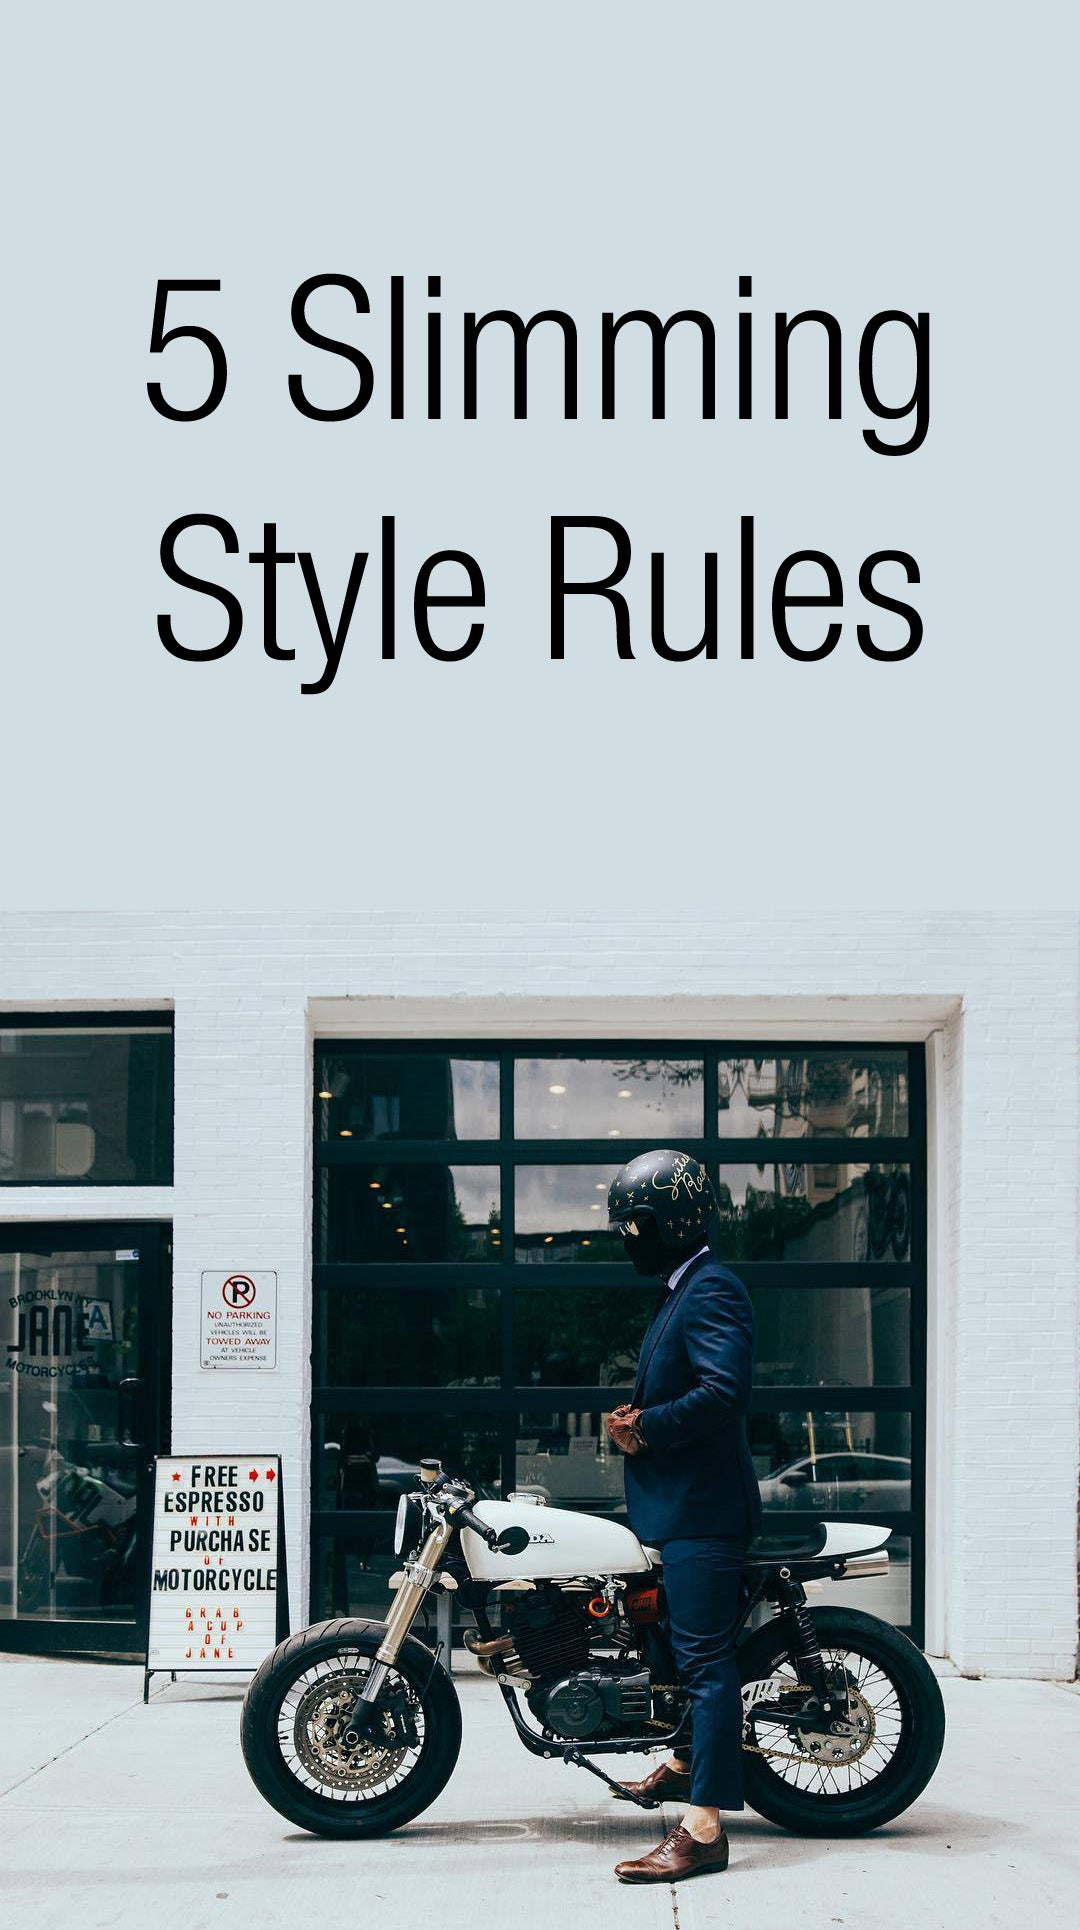 5 slimming style rules for men